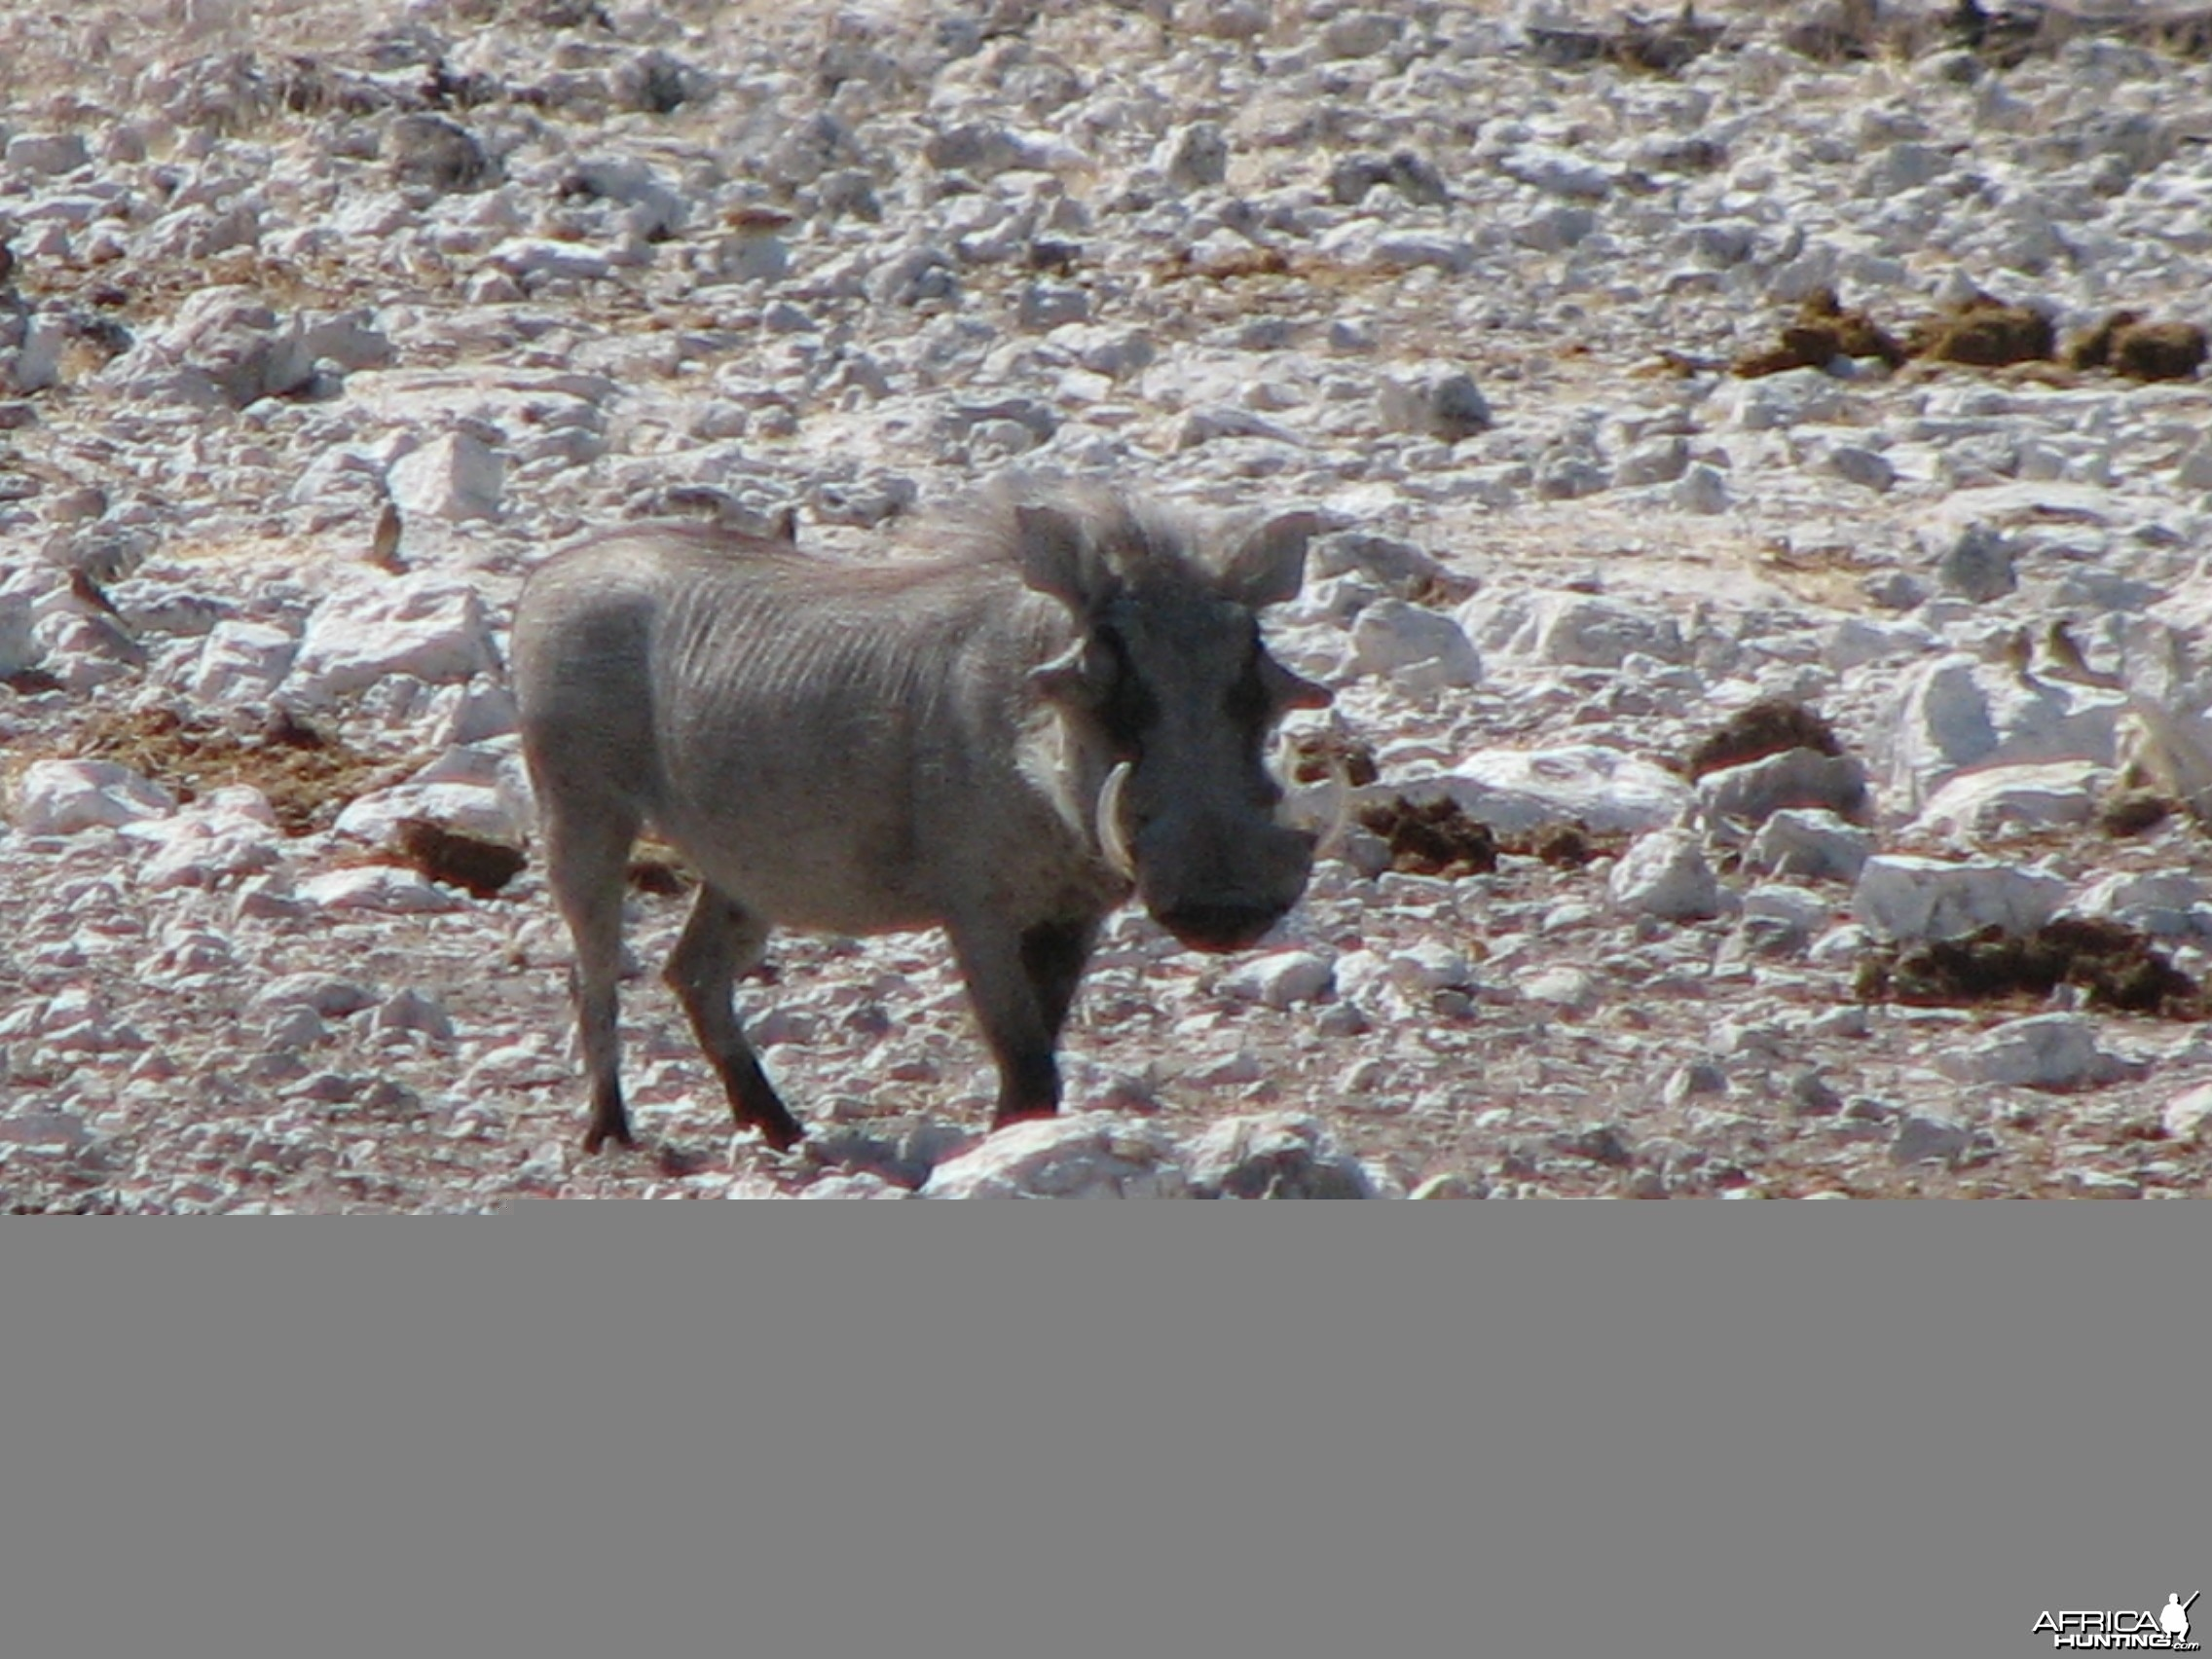 Warthog at Etosha National Park, Namibia